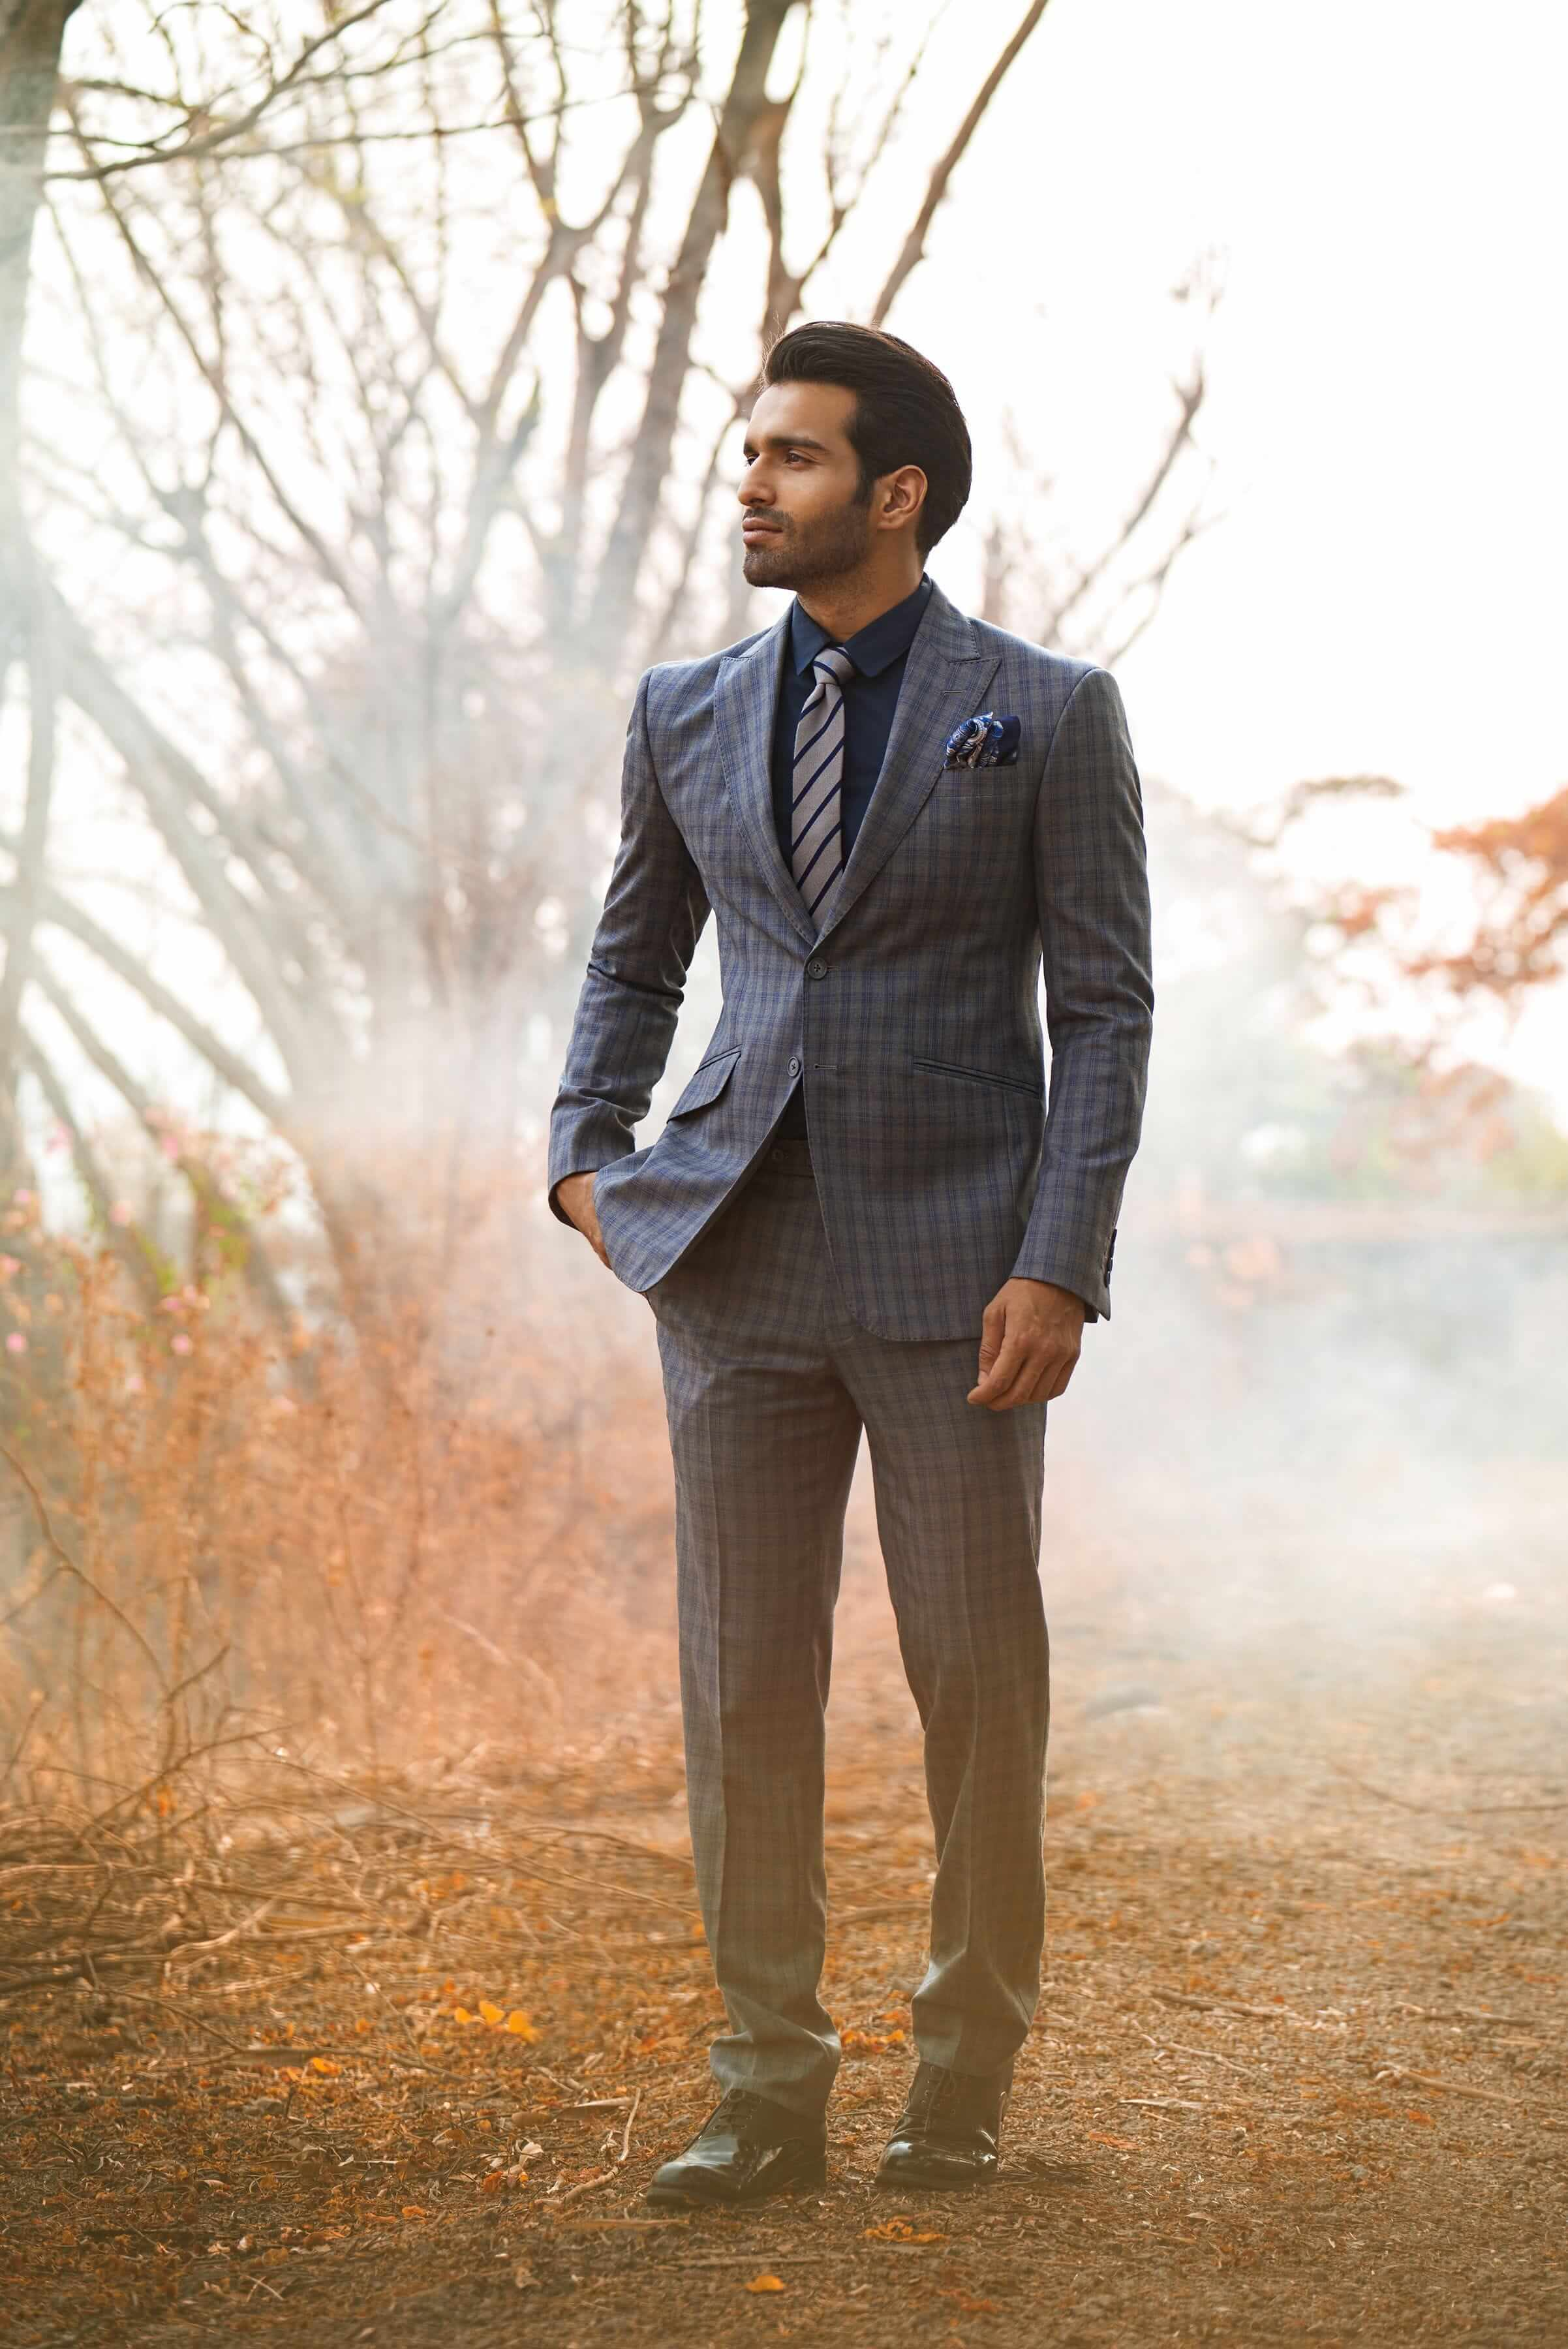 Two-button, single-breasted suit with a peak lapel and slant pocket detailing